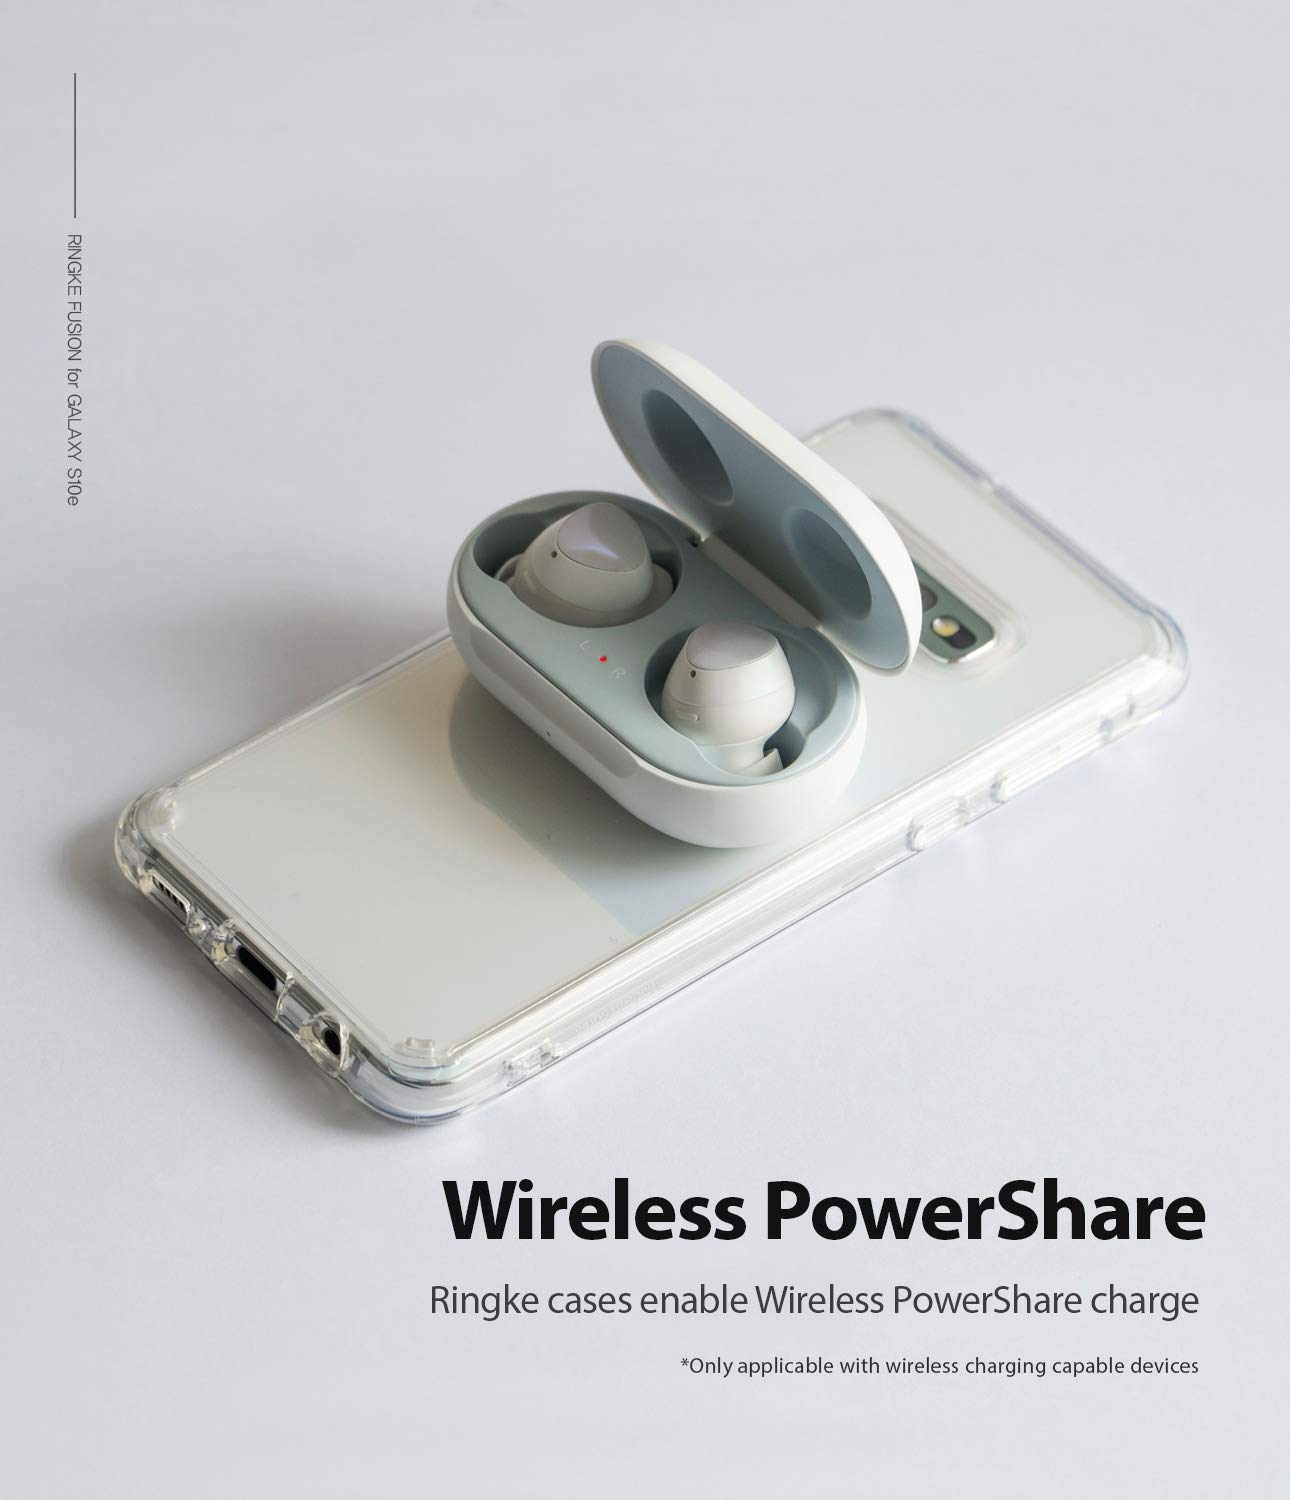 wireless powershare compatible